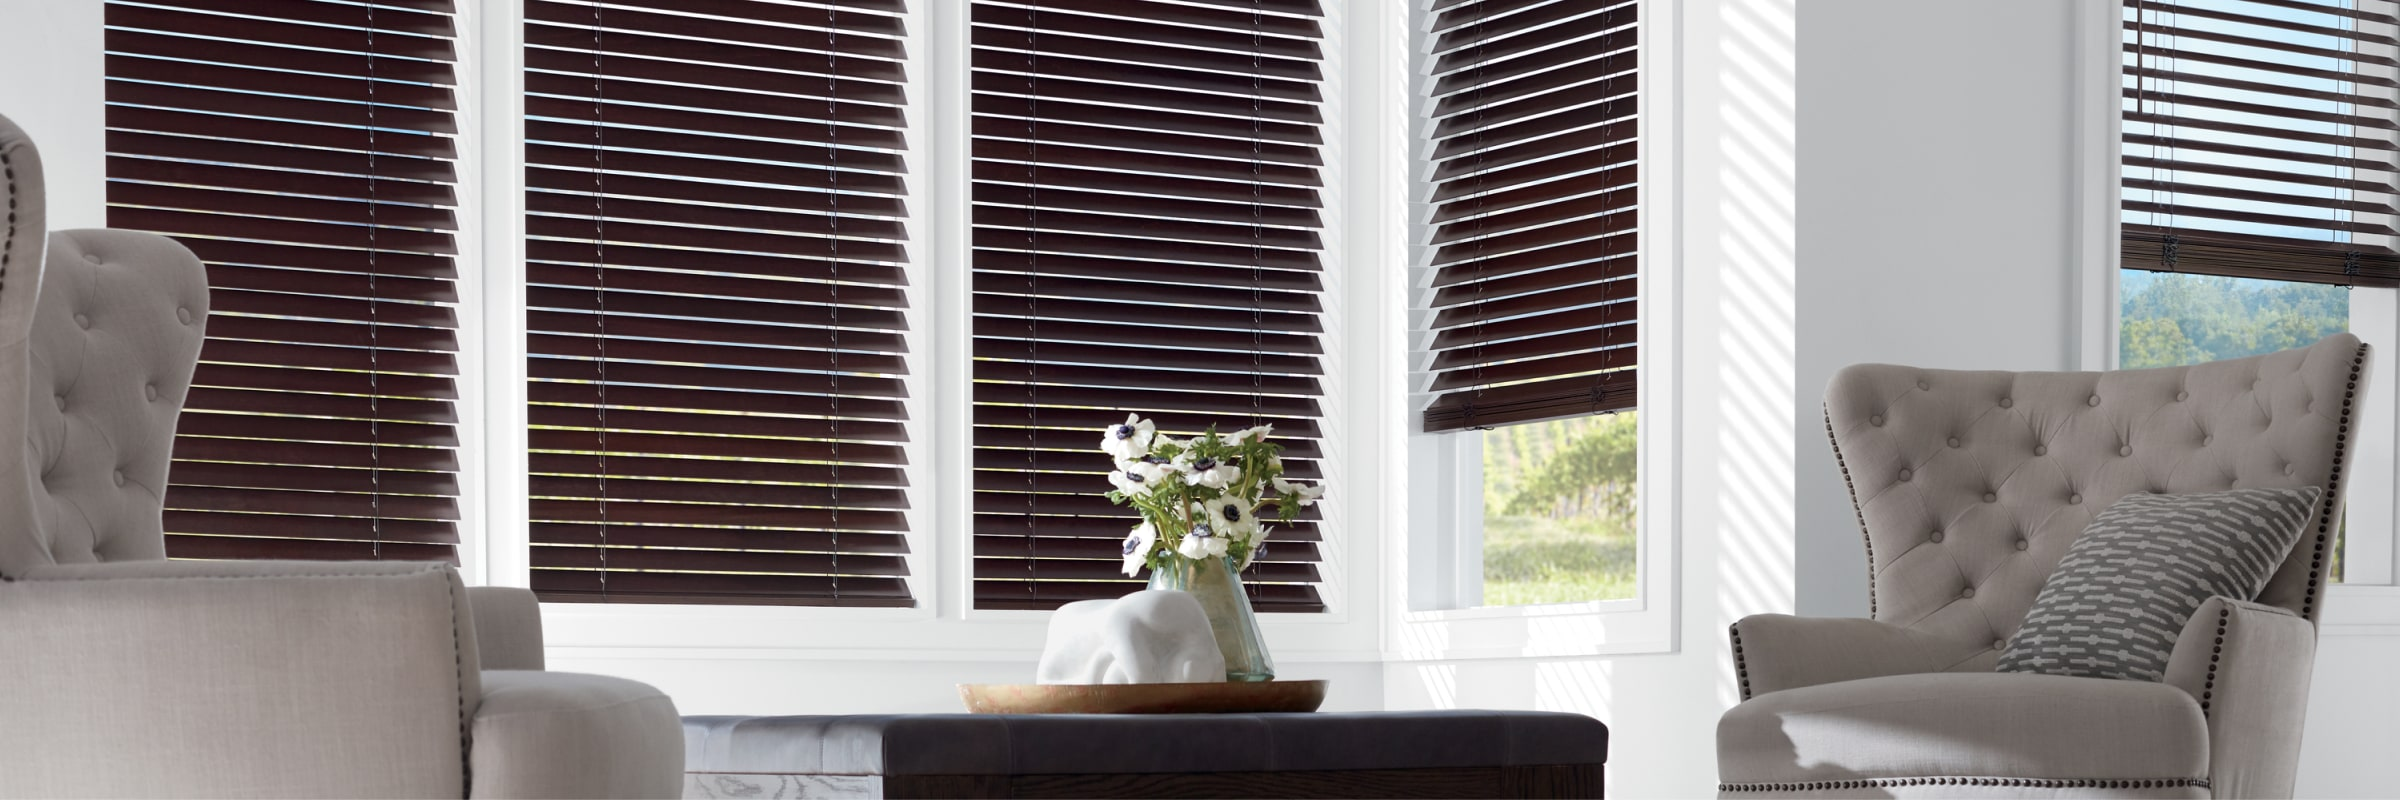 Wooden blinds in Classics Basswood Espresso - Parkland